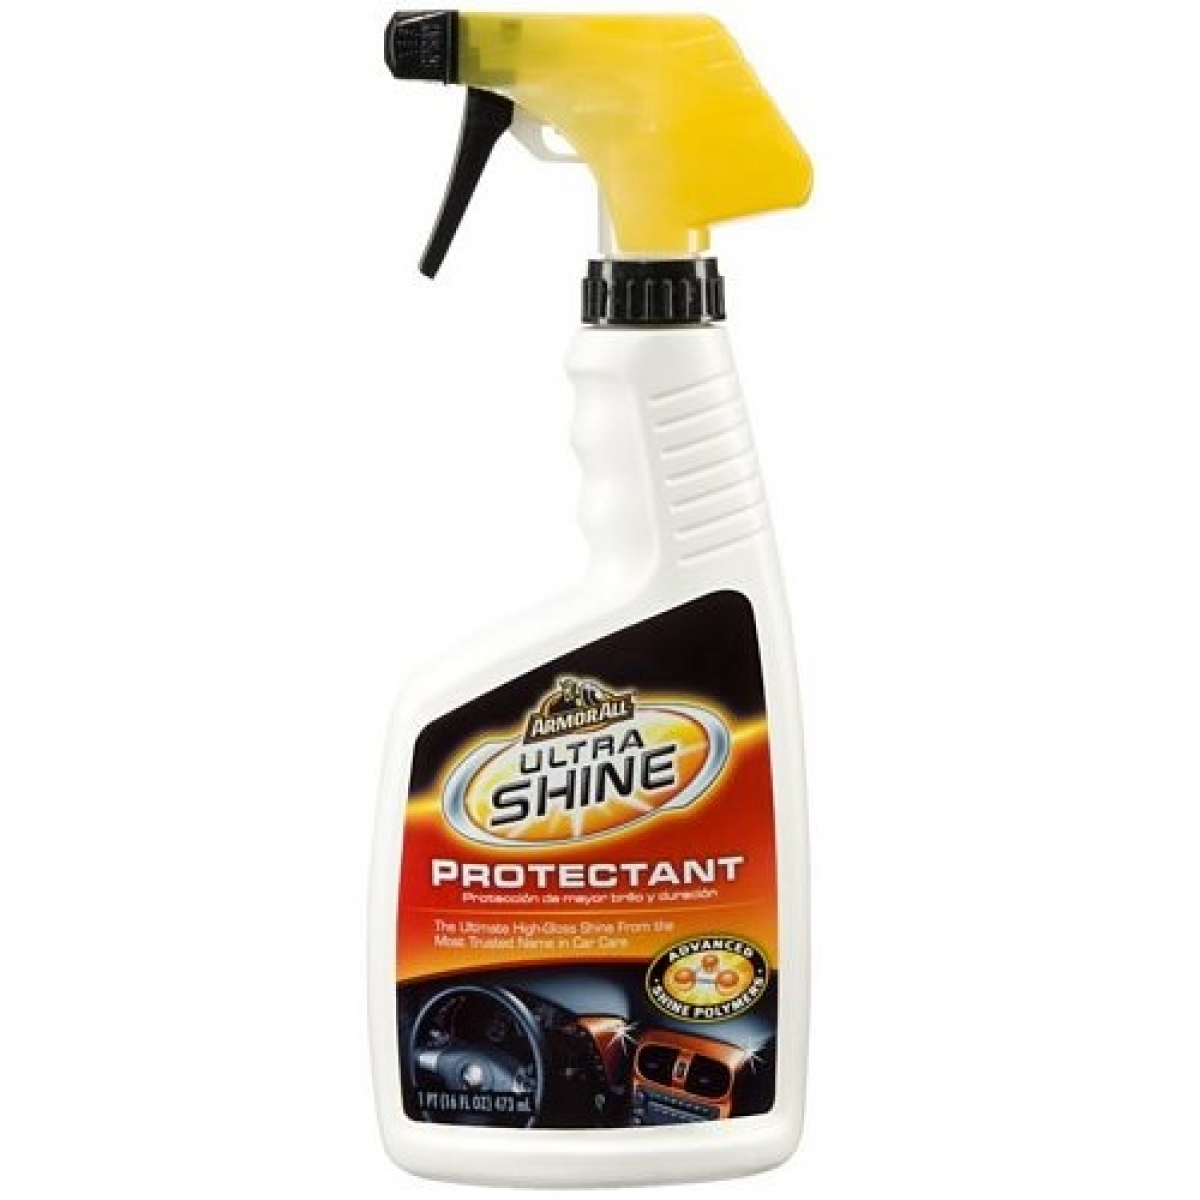 armor all 10345 ultra shine protectant 16oz shop for your car care products. Black Bedroom Furniture Sets. Home Design Ideas